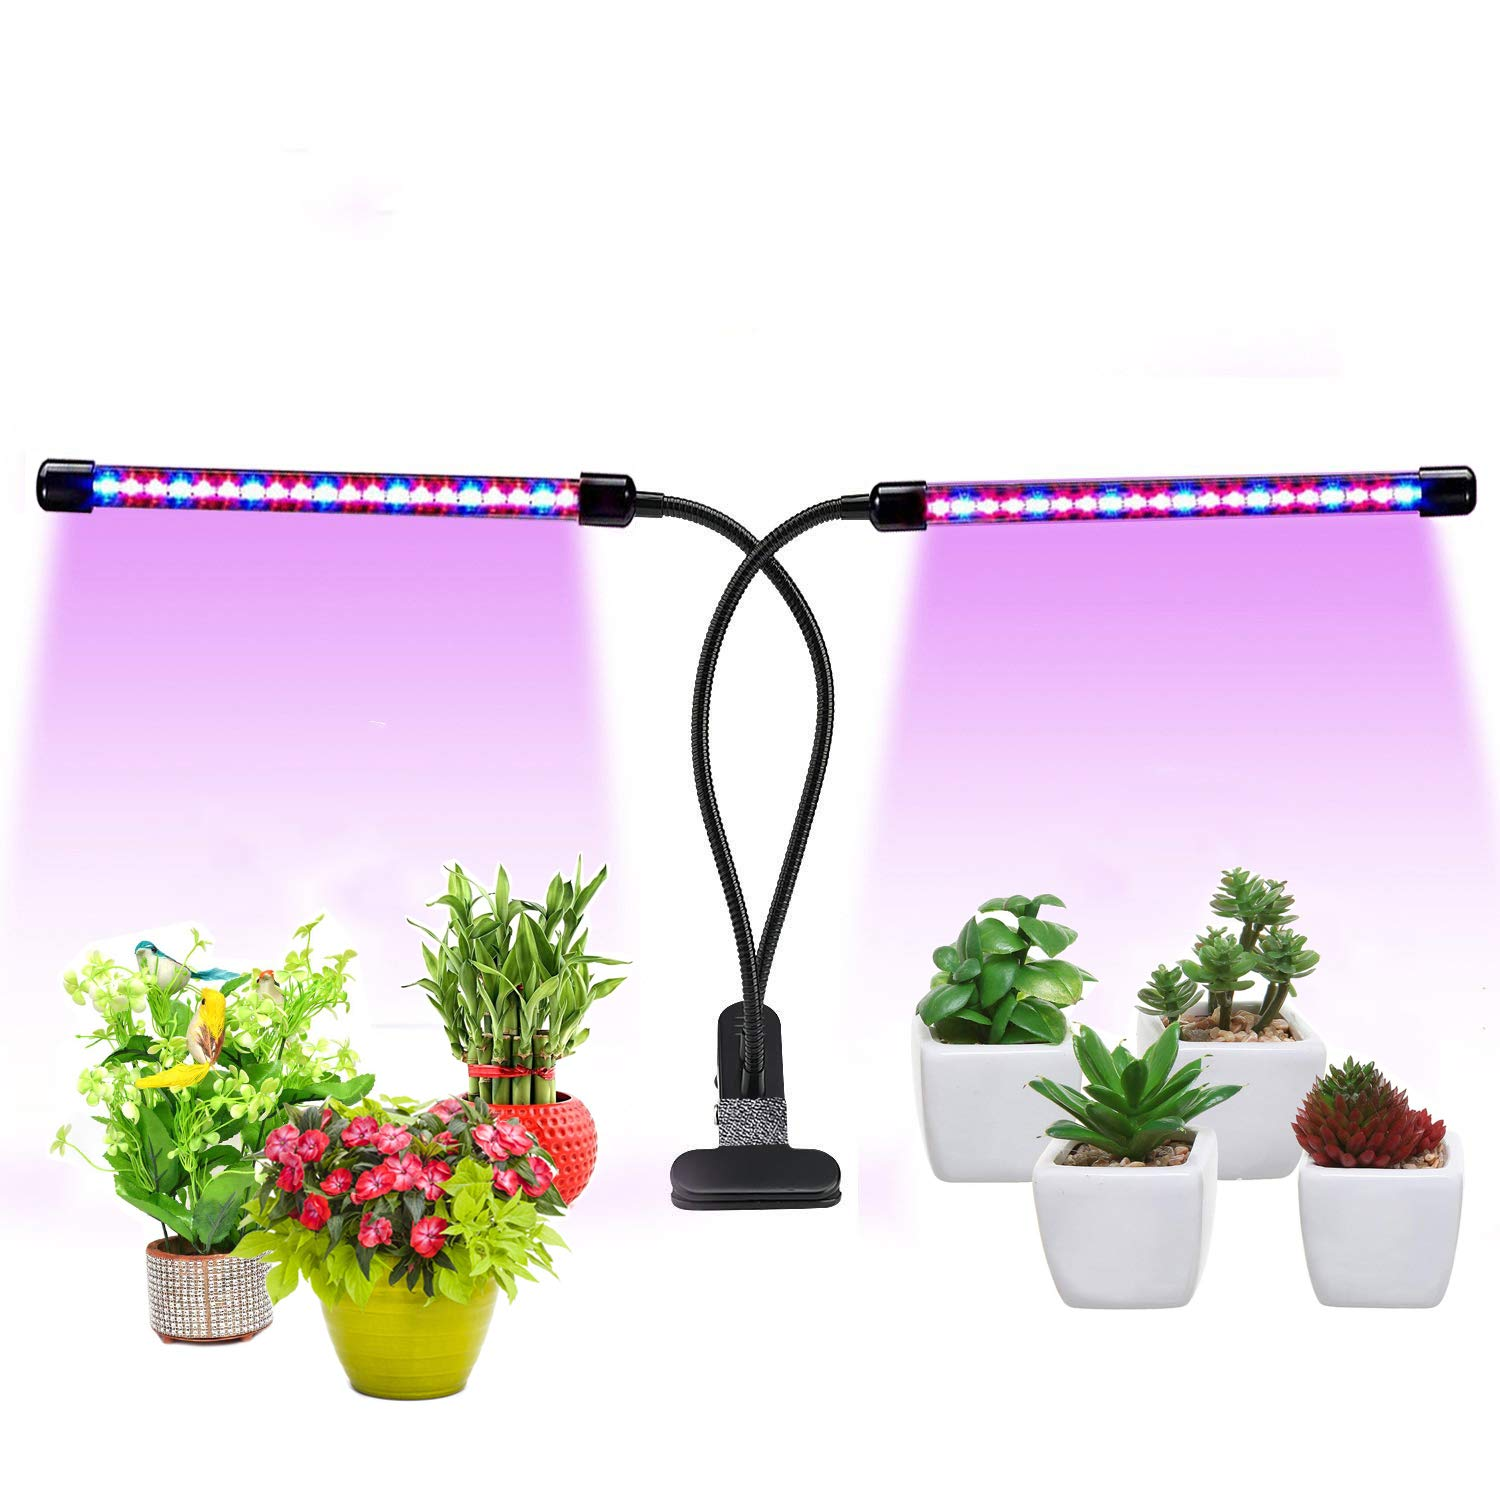 LED Grow Lights for Indoor Plants, Auto Turn ON & Off Plant Growing Light with 20W Dual Head/40 LED Bulbs/Red,Blue Spectrum/9 Dimmable Levels 3/9/12H Timer Grow Lamp Bulbs [2018 Upgraded]